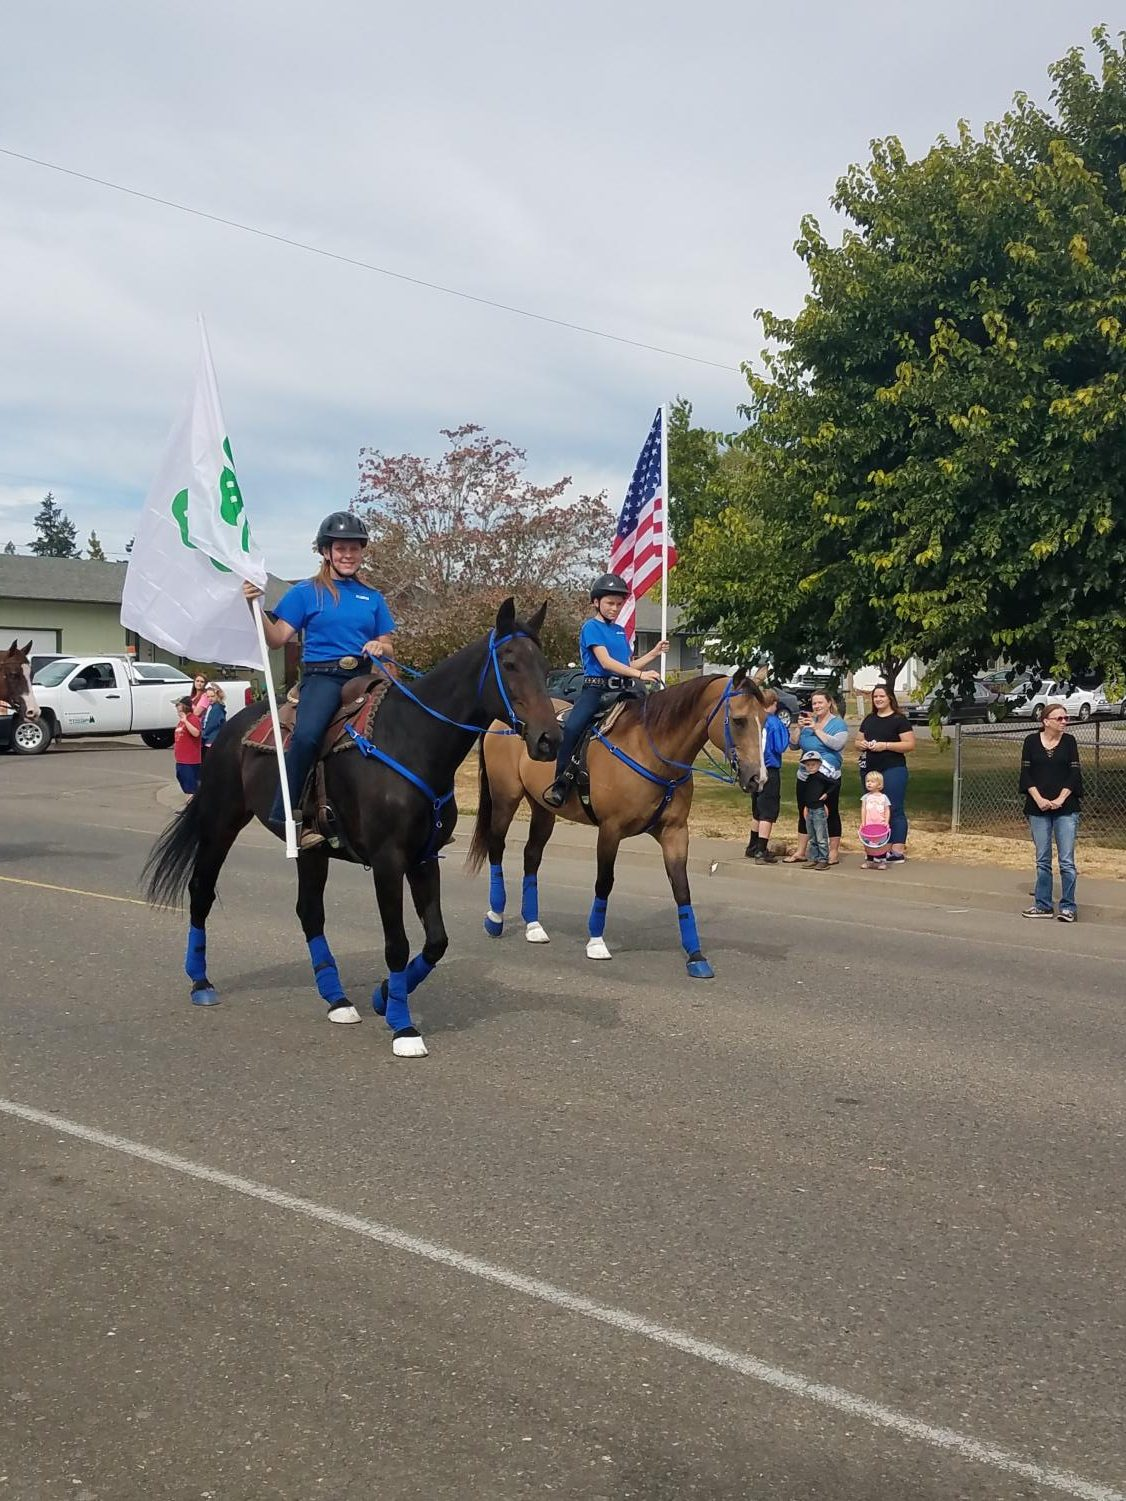 Alexis+and+Savanna+Levering+show+off+their+equestrian+skills+during+the+parade.+